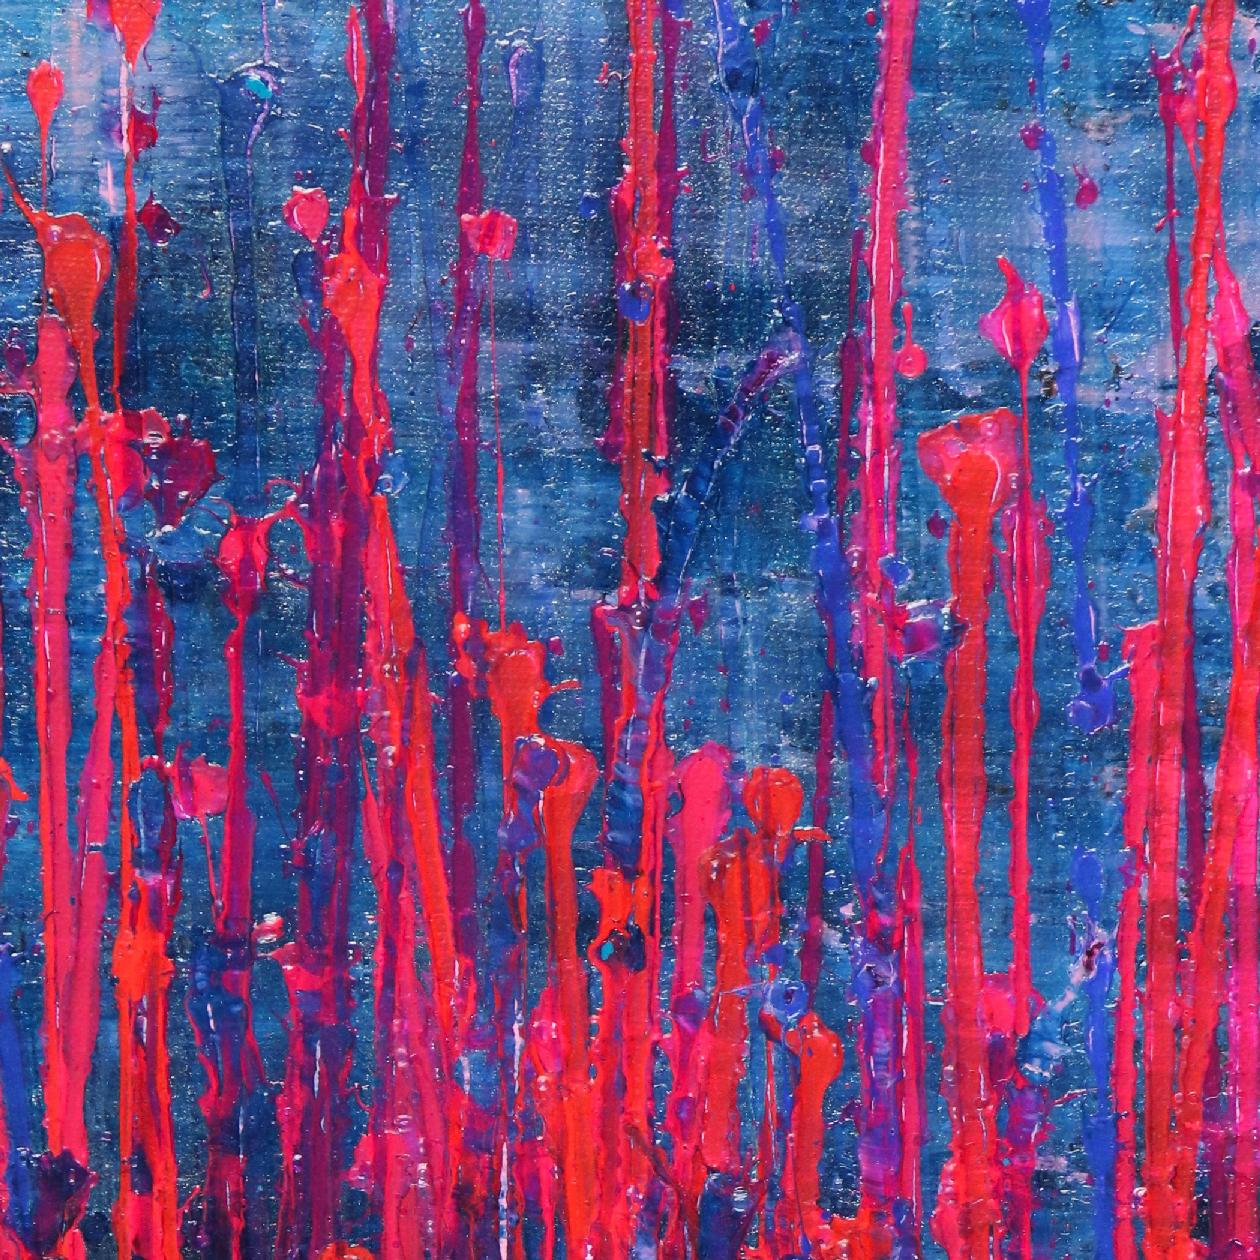 Pink Takeover (Over Silver Blue) (2020) by Nestor Toro